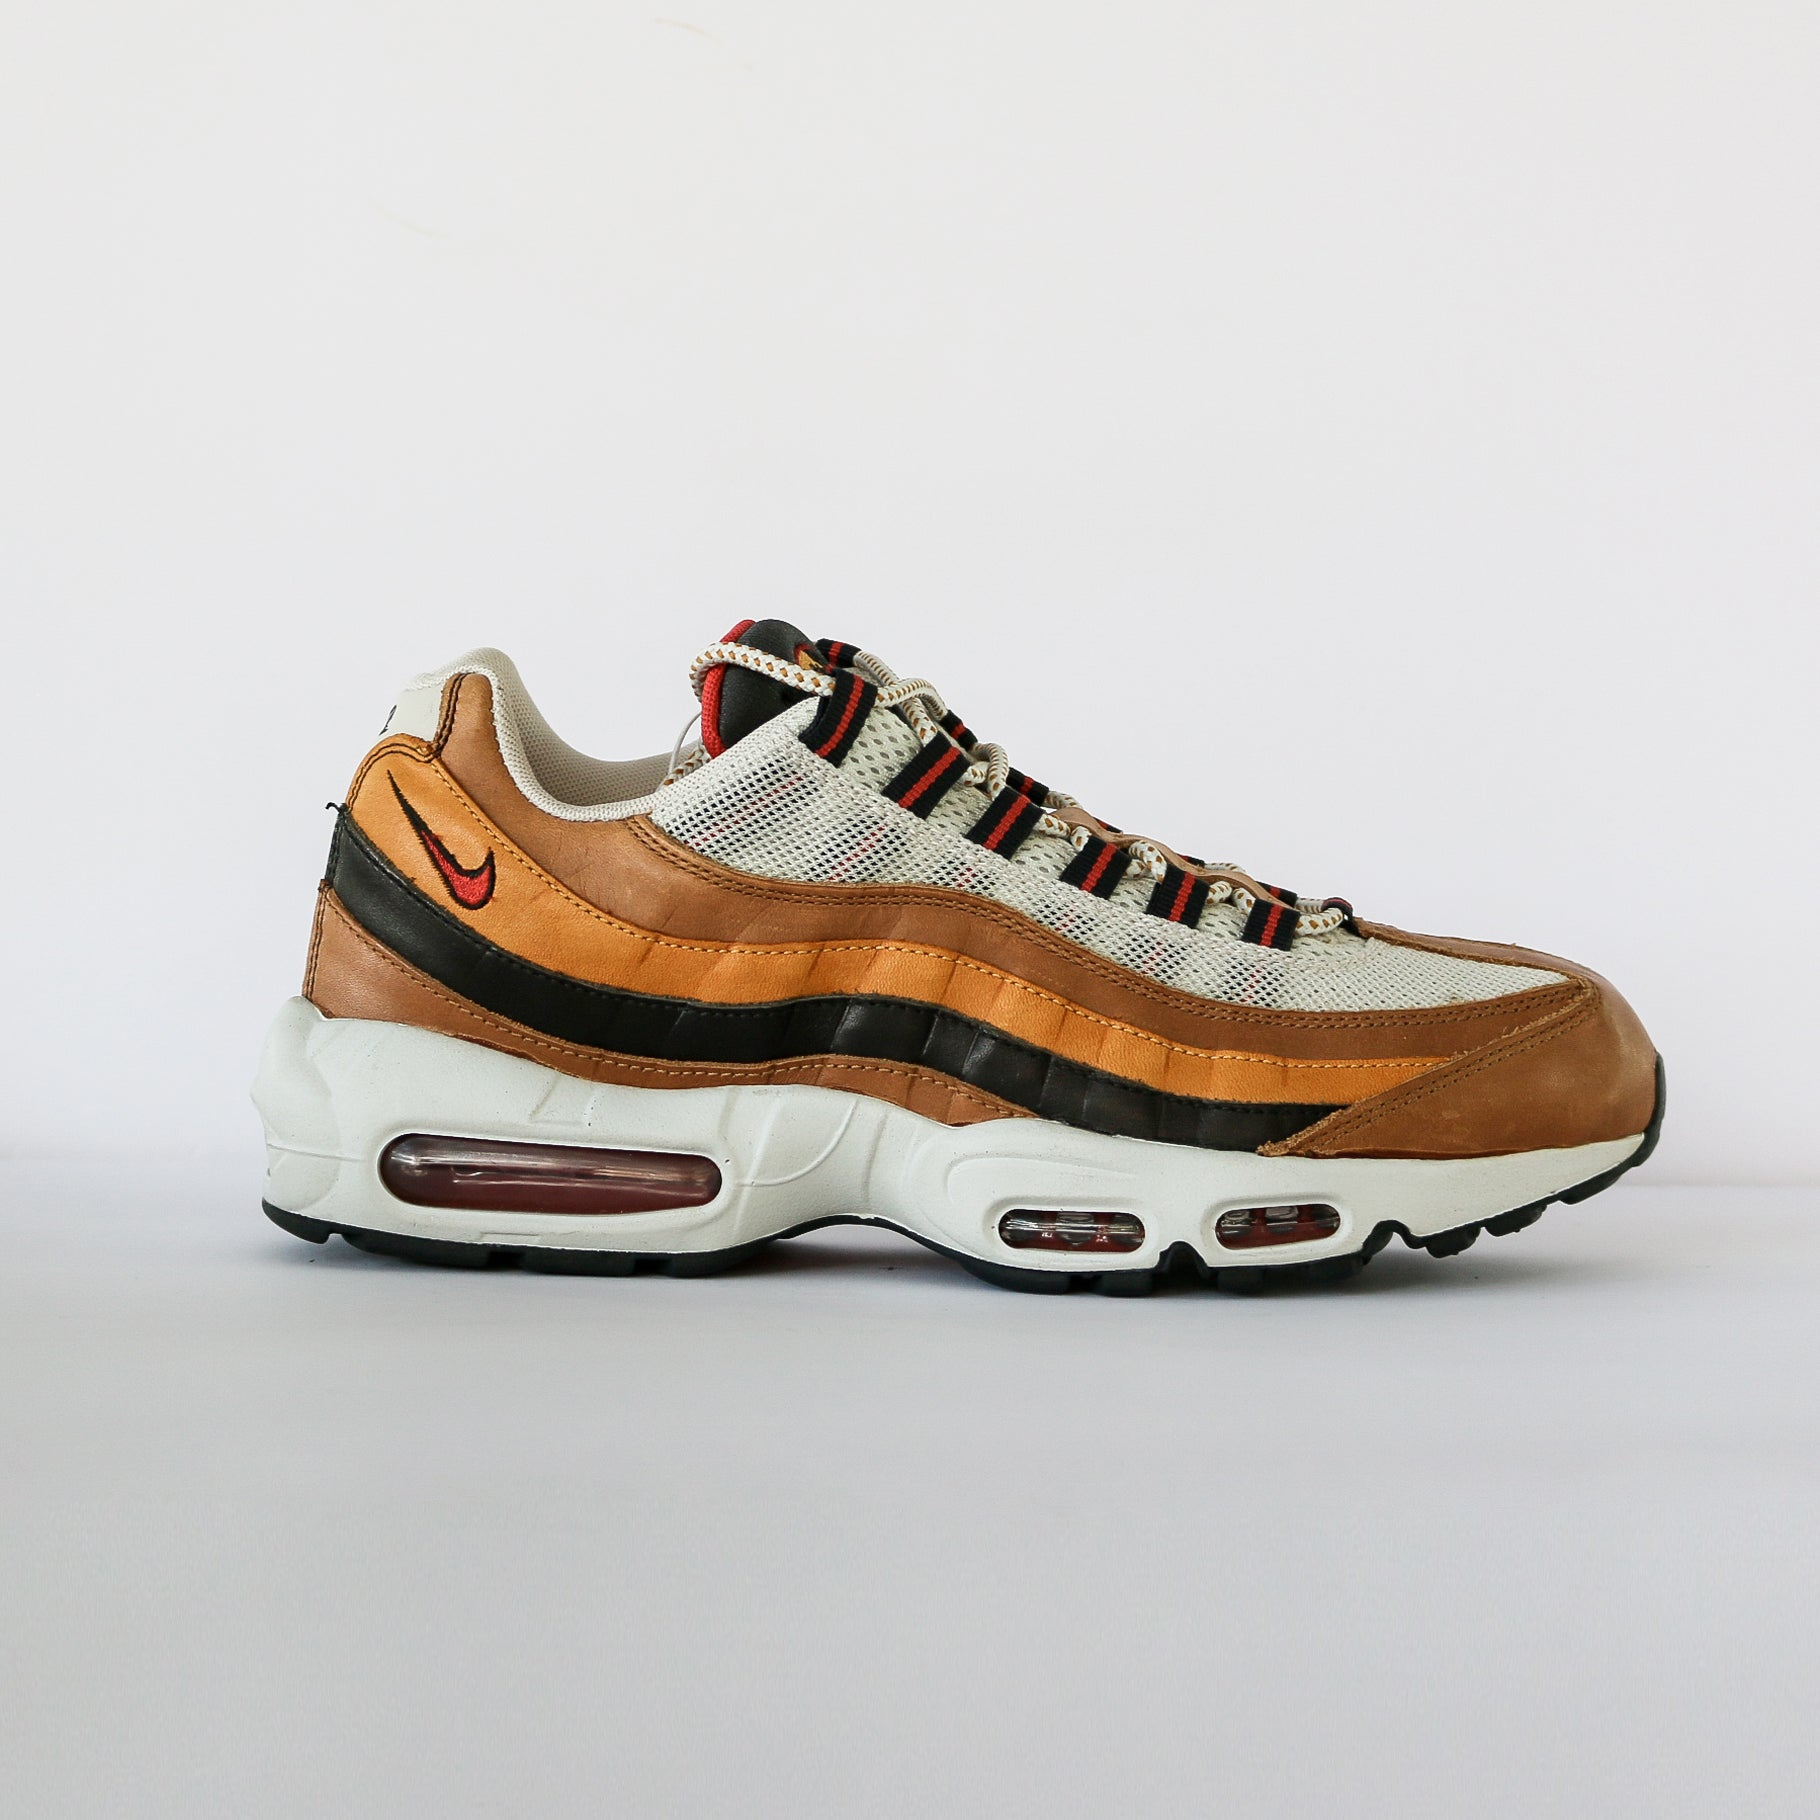 Air Max 95 'Escape' QS